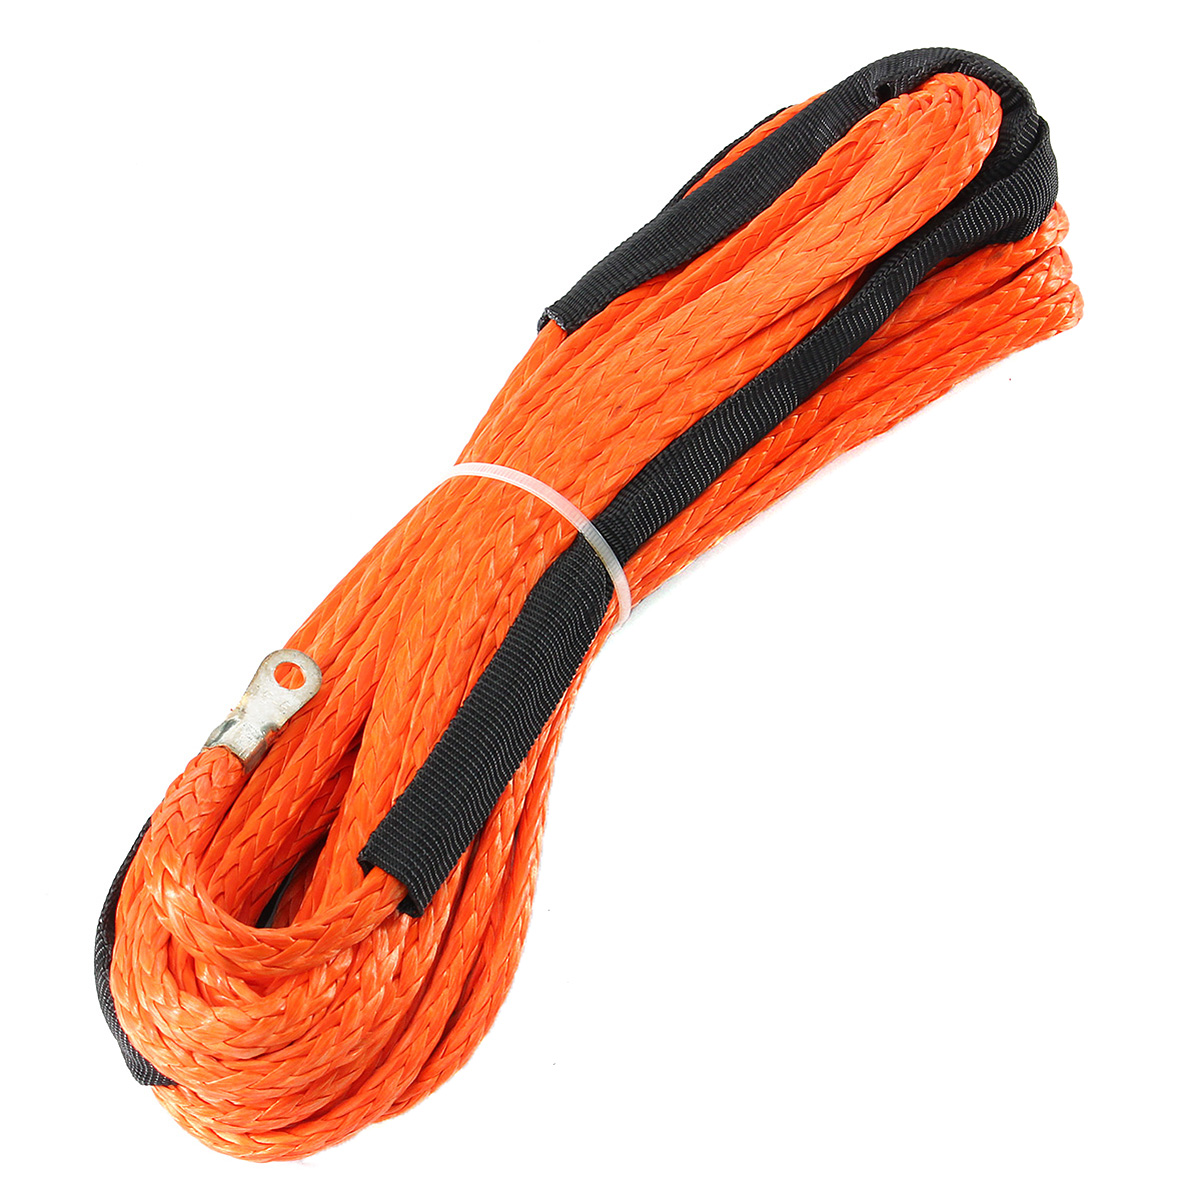 6mmX12m Synthetic Winch Line Cable Rope For Car 4X4 Off Road ATV UTV